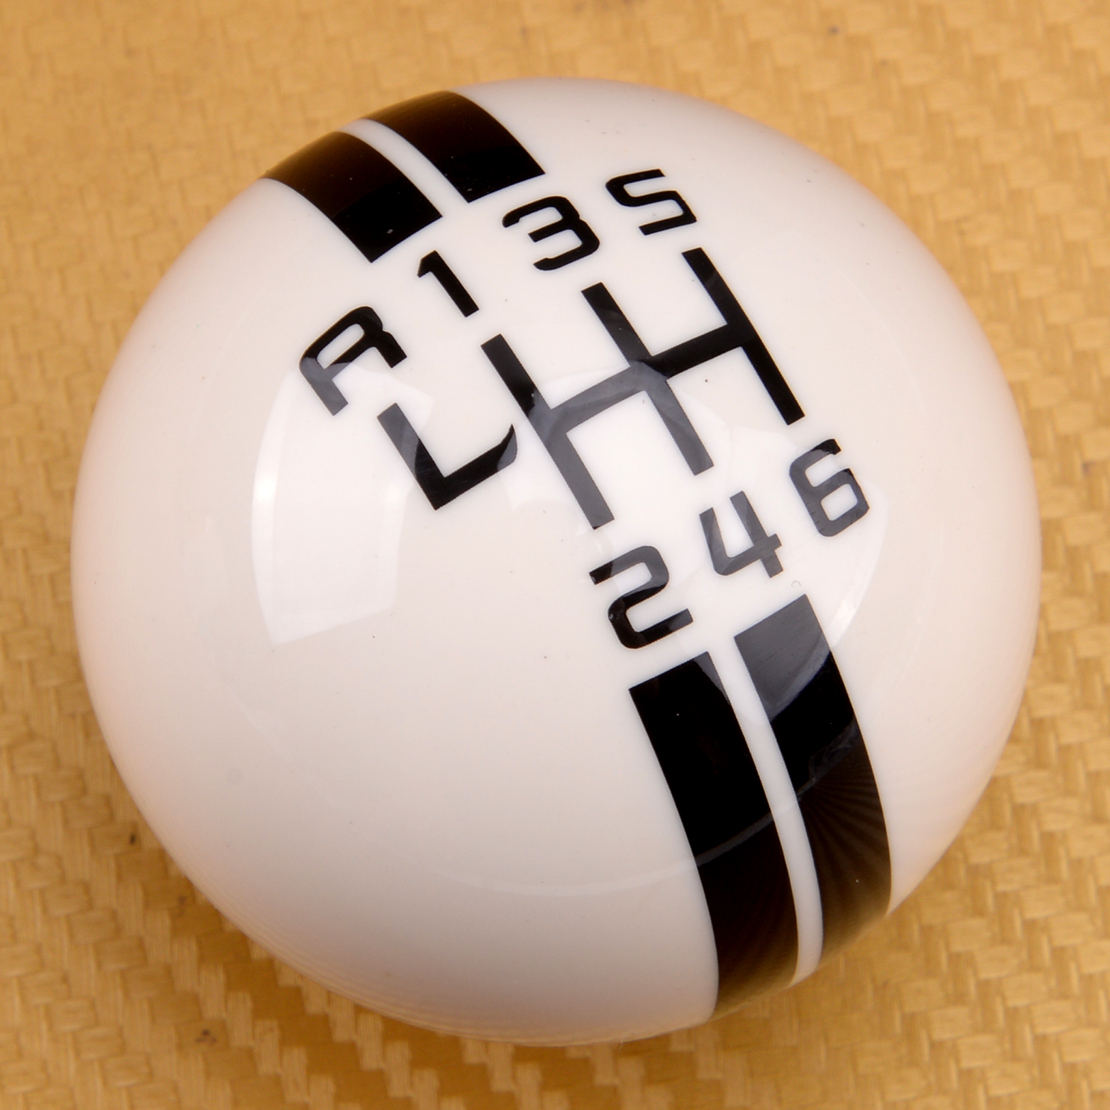 6 Speed Car White Manual Gear Shift Knob Ball Fit for Ford Mustang Shelby GT 500 Cobra MT Car Accessories